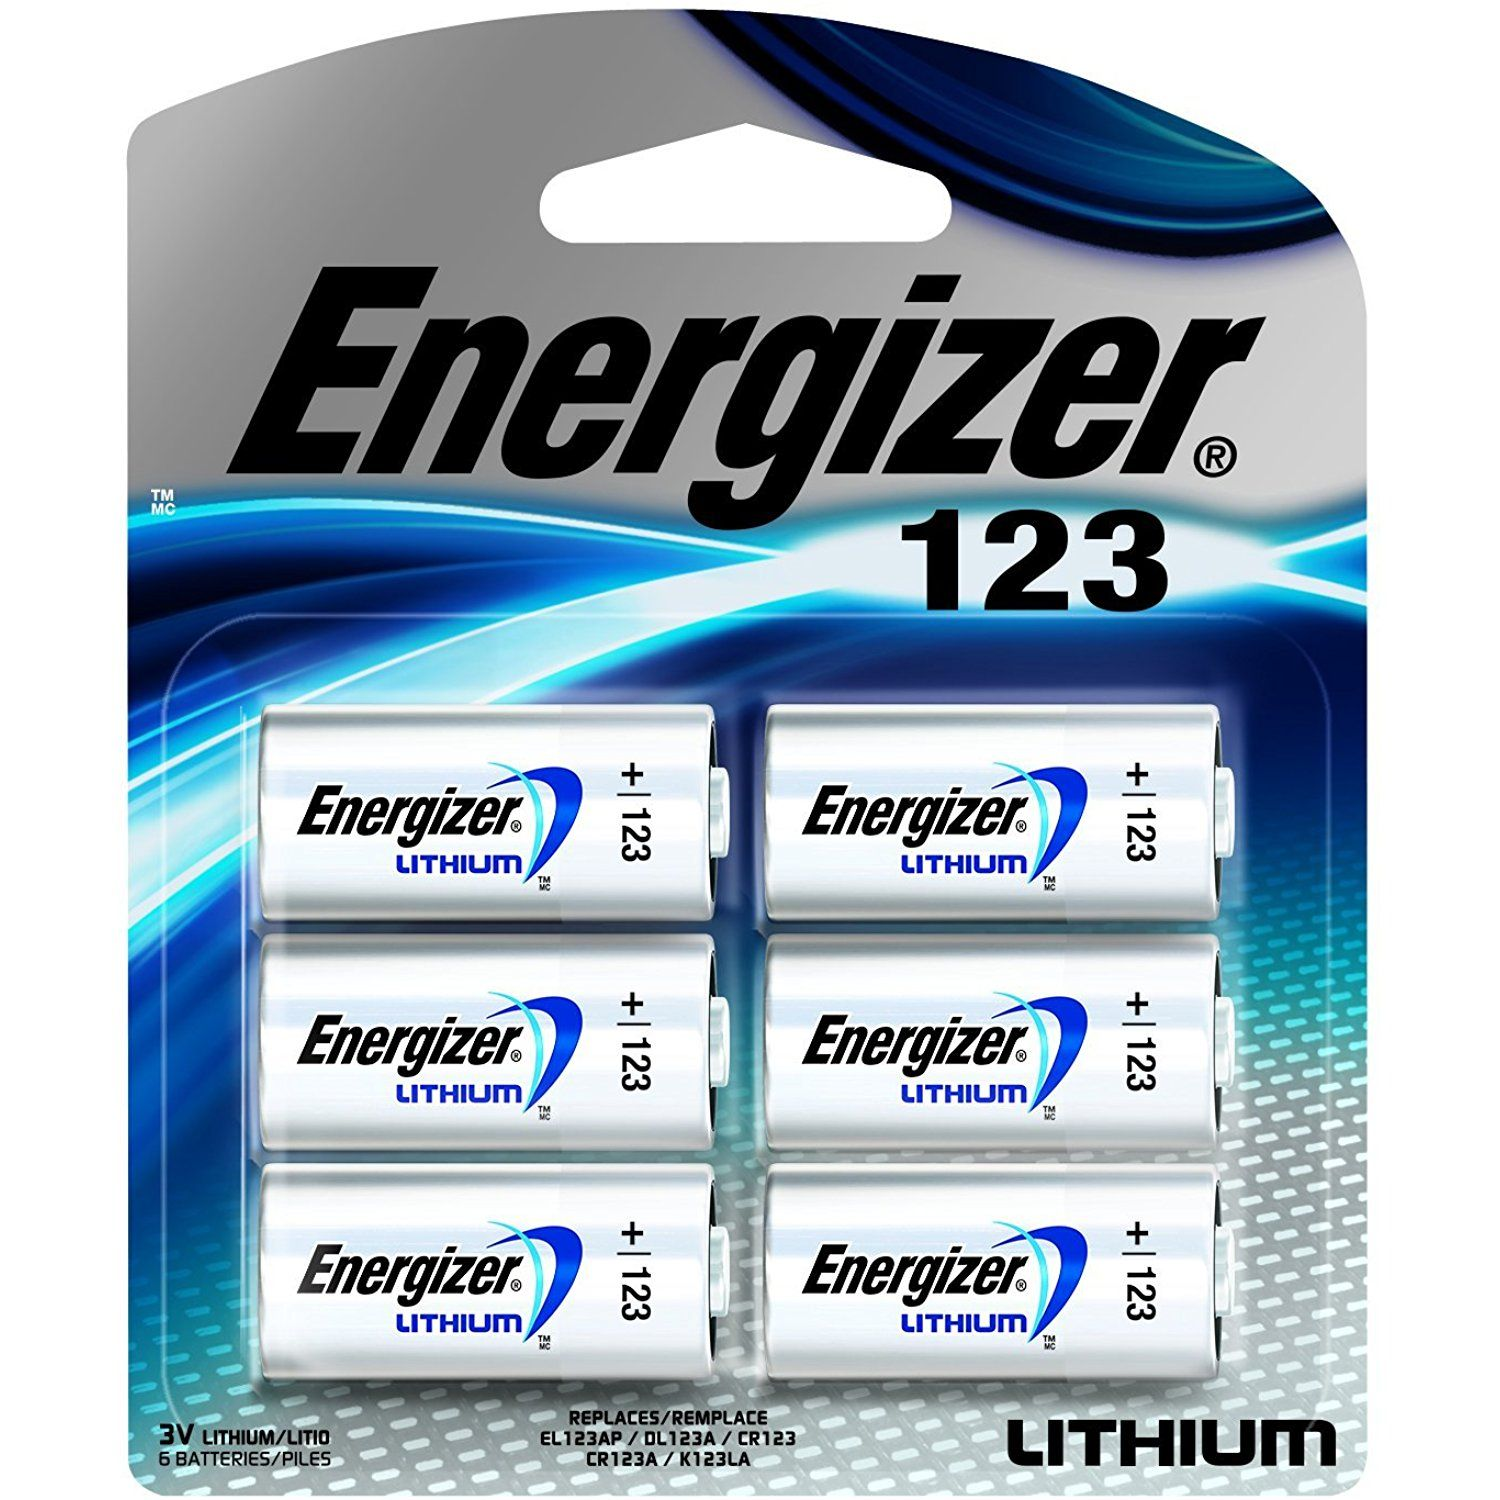 Energizer Cr123a Lithium 3v Battery 123 Cr123 Batteries 6 Count Packaging May Vary Click On The Image For Energizer Lithium Battery Energizer Battery